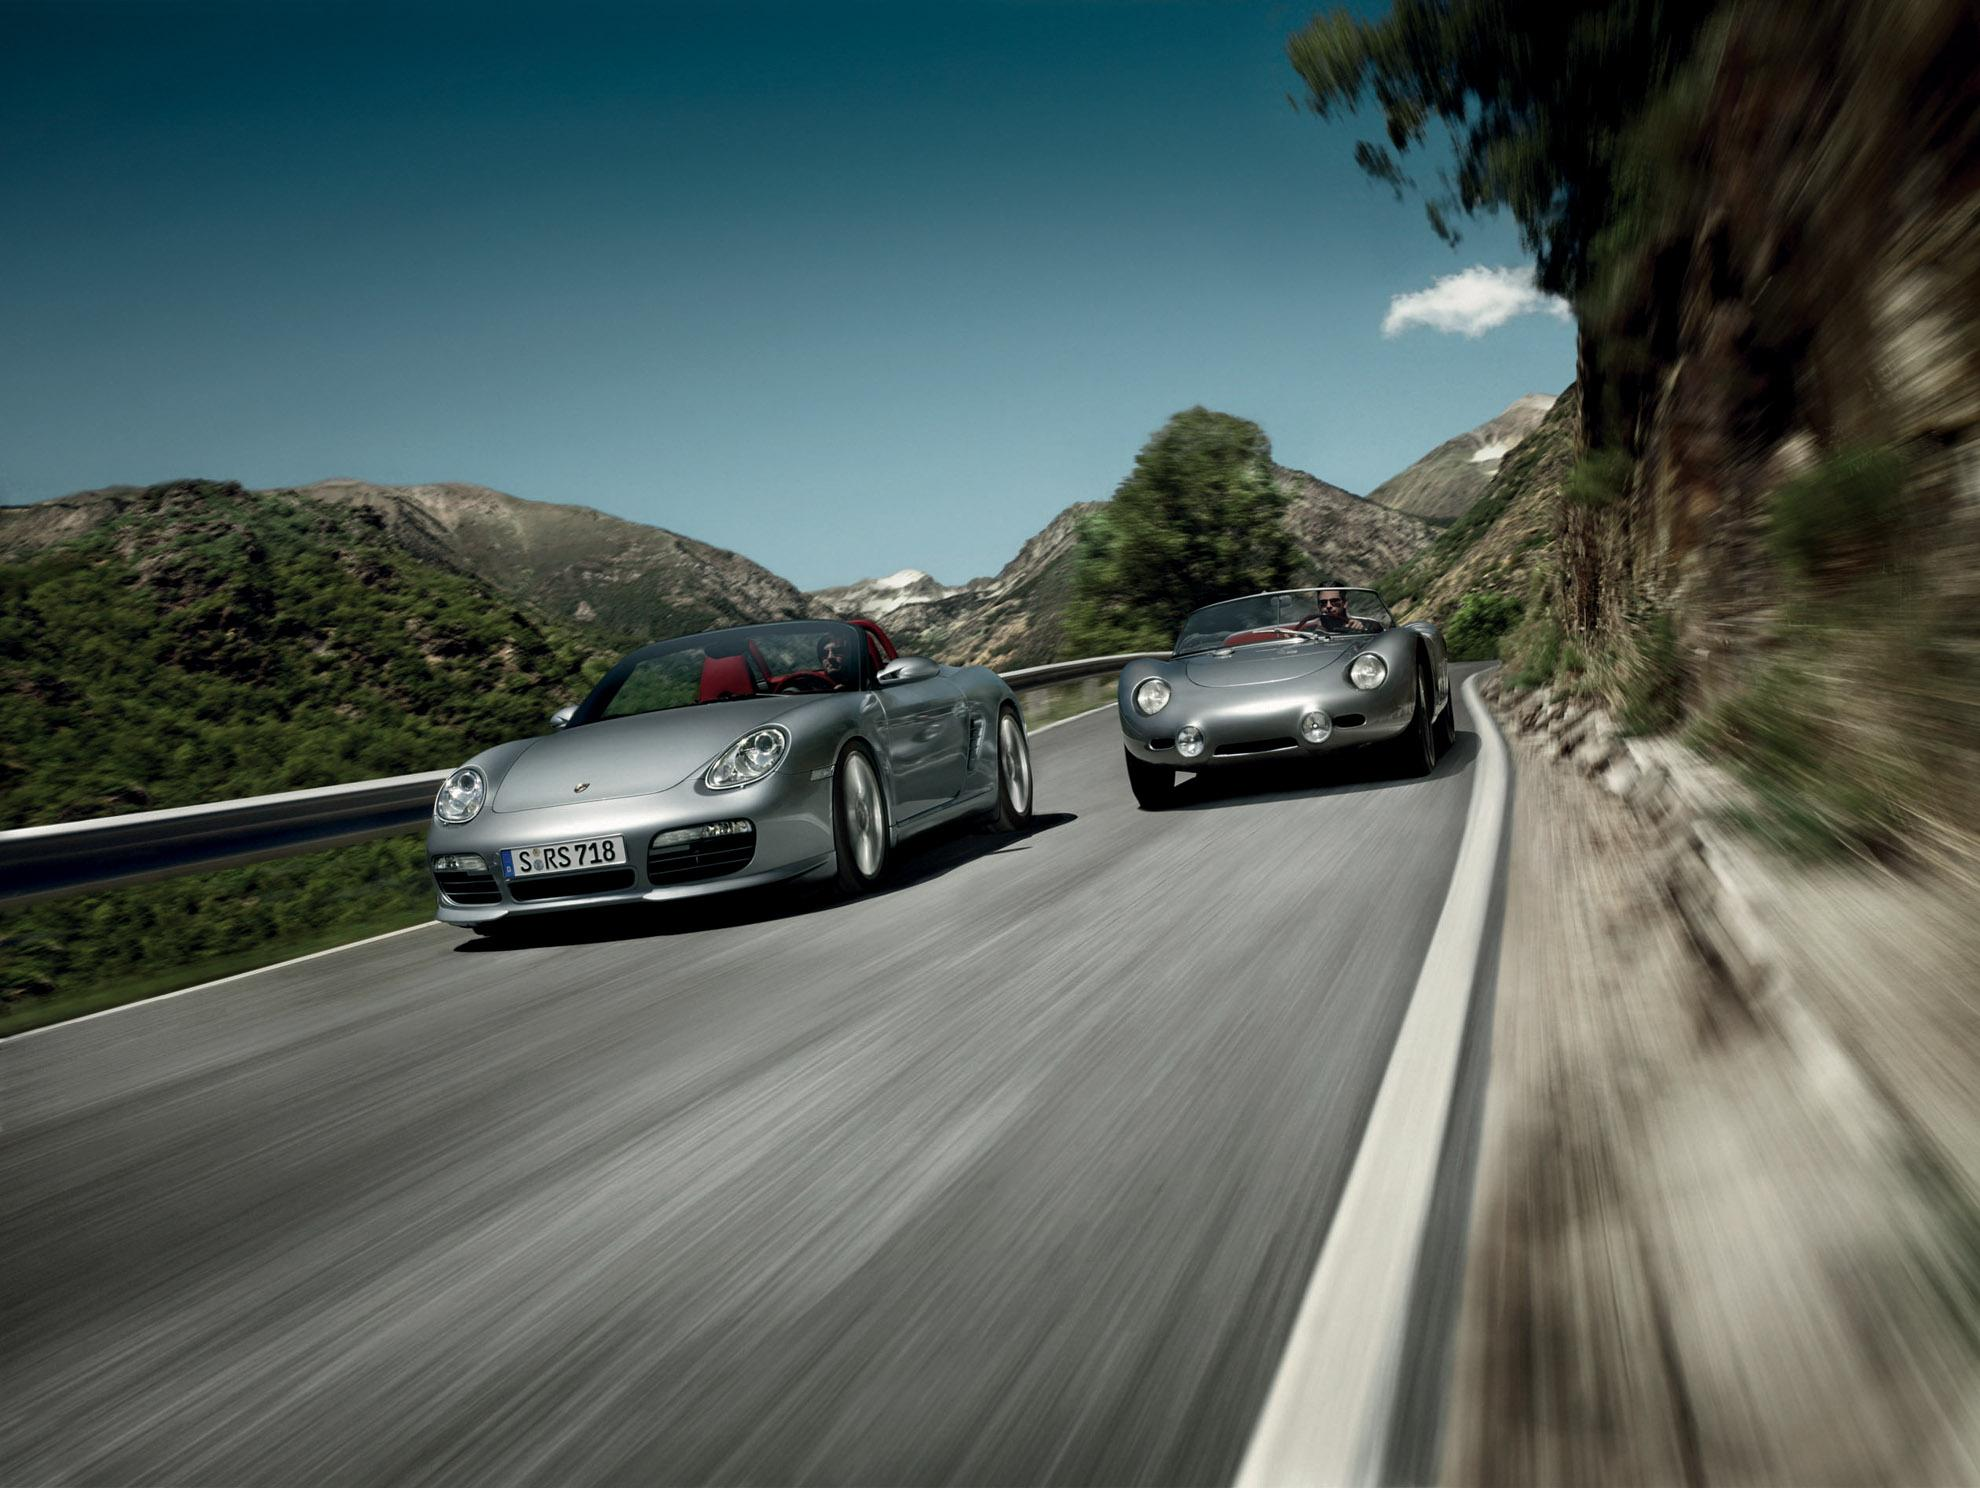 porsche the boxster concept Porsche celebrates 70 years with an open-top concept, over 500 hp and retro styling.